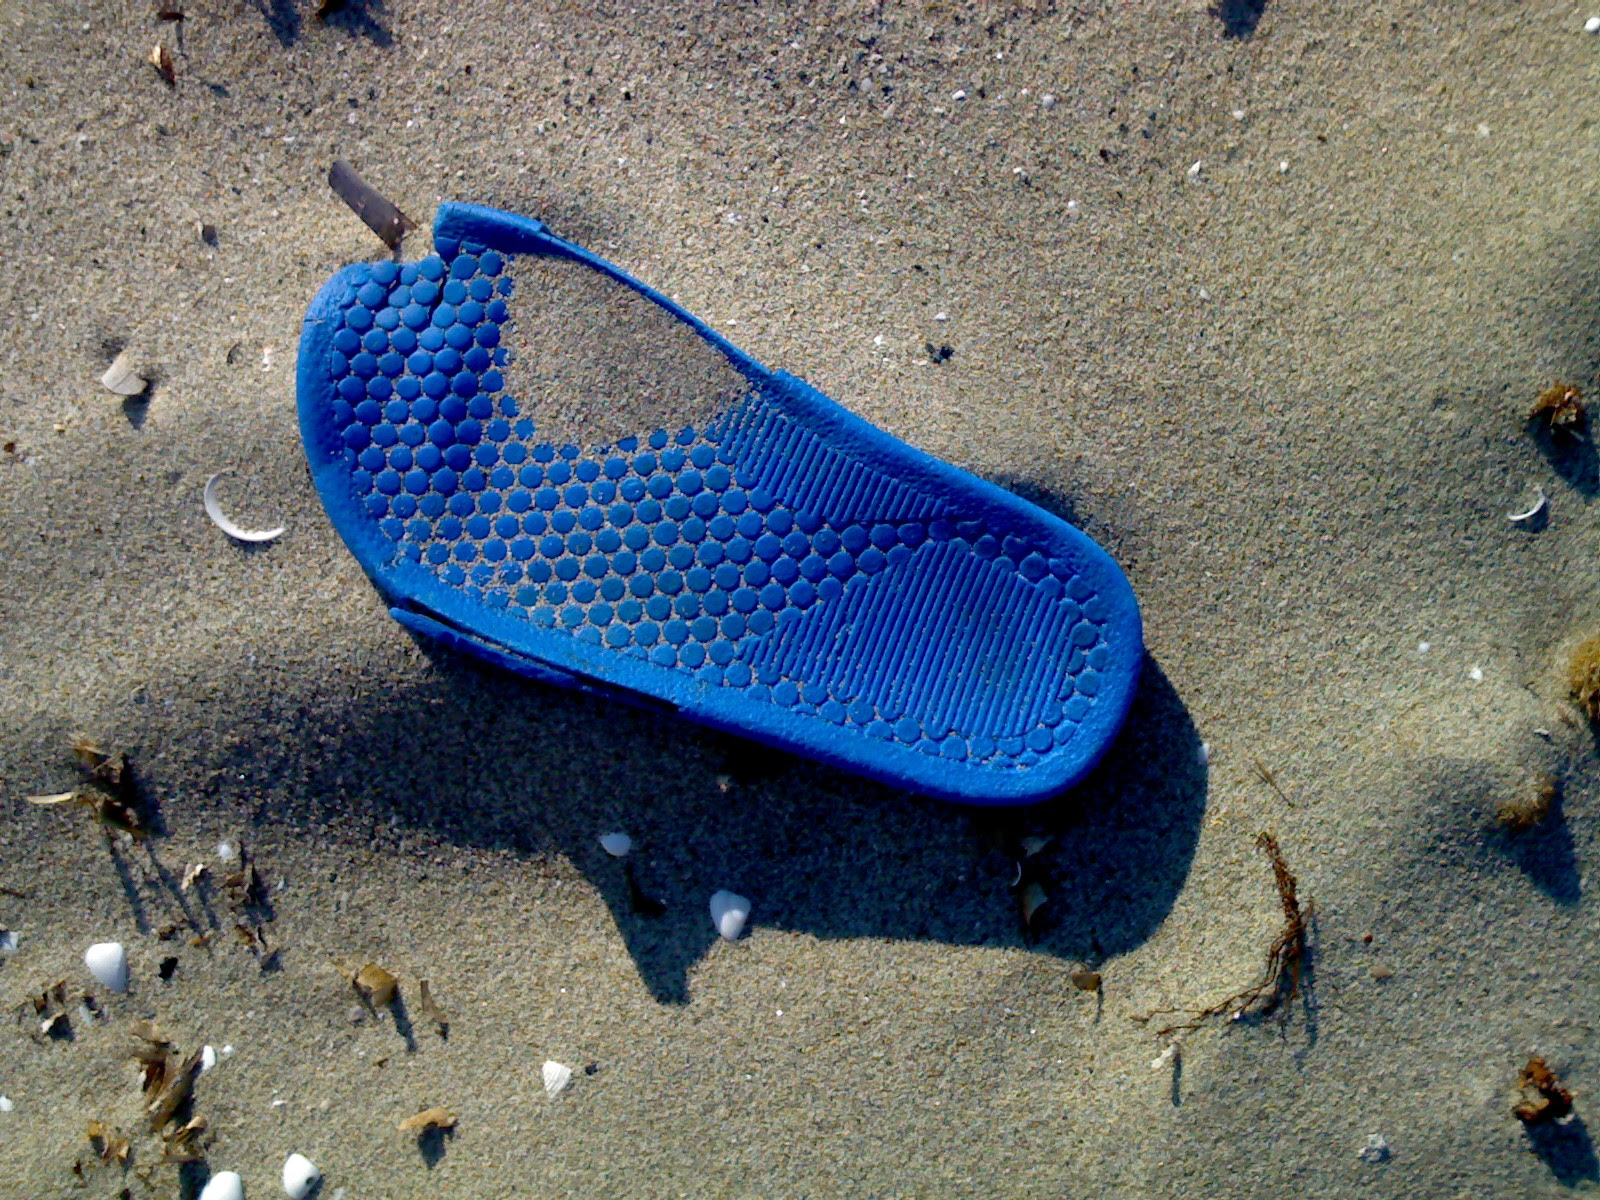 http://upload.wikimedia.org/wikipedia/commons/a/a7/Plastic_pollution_083.jpg